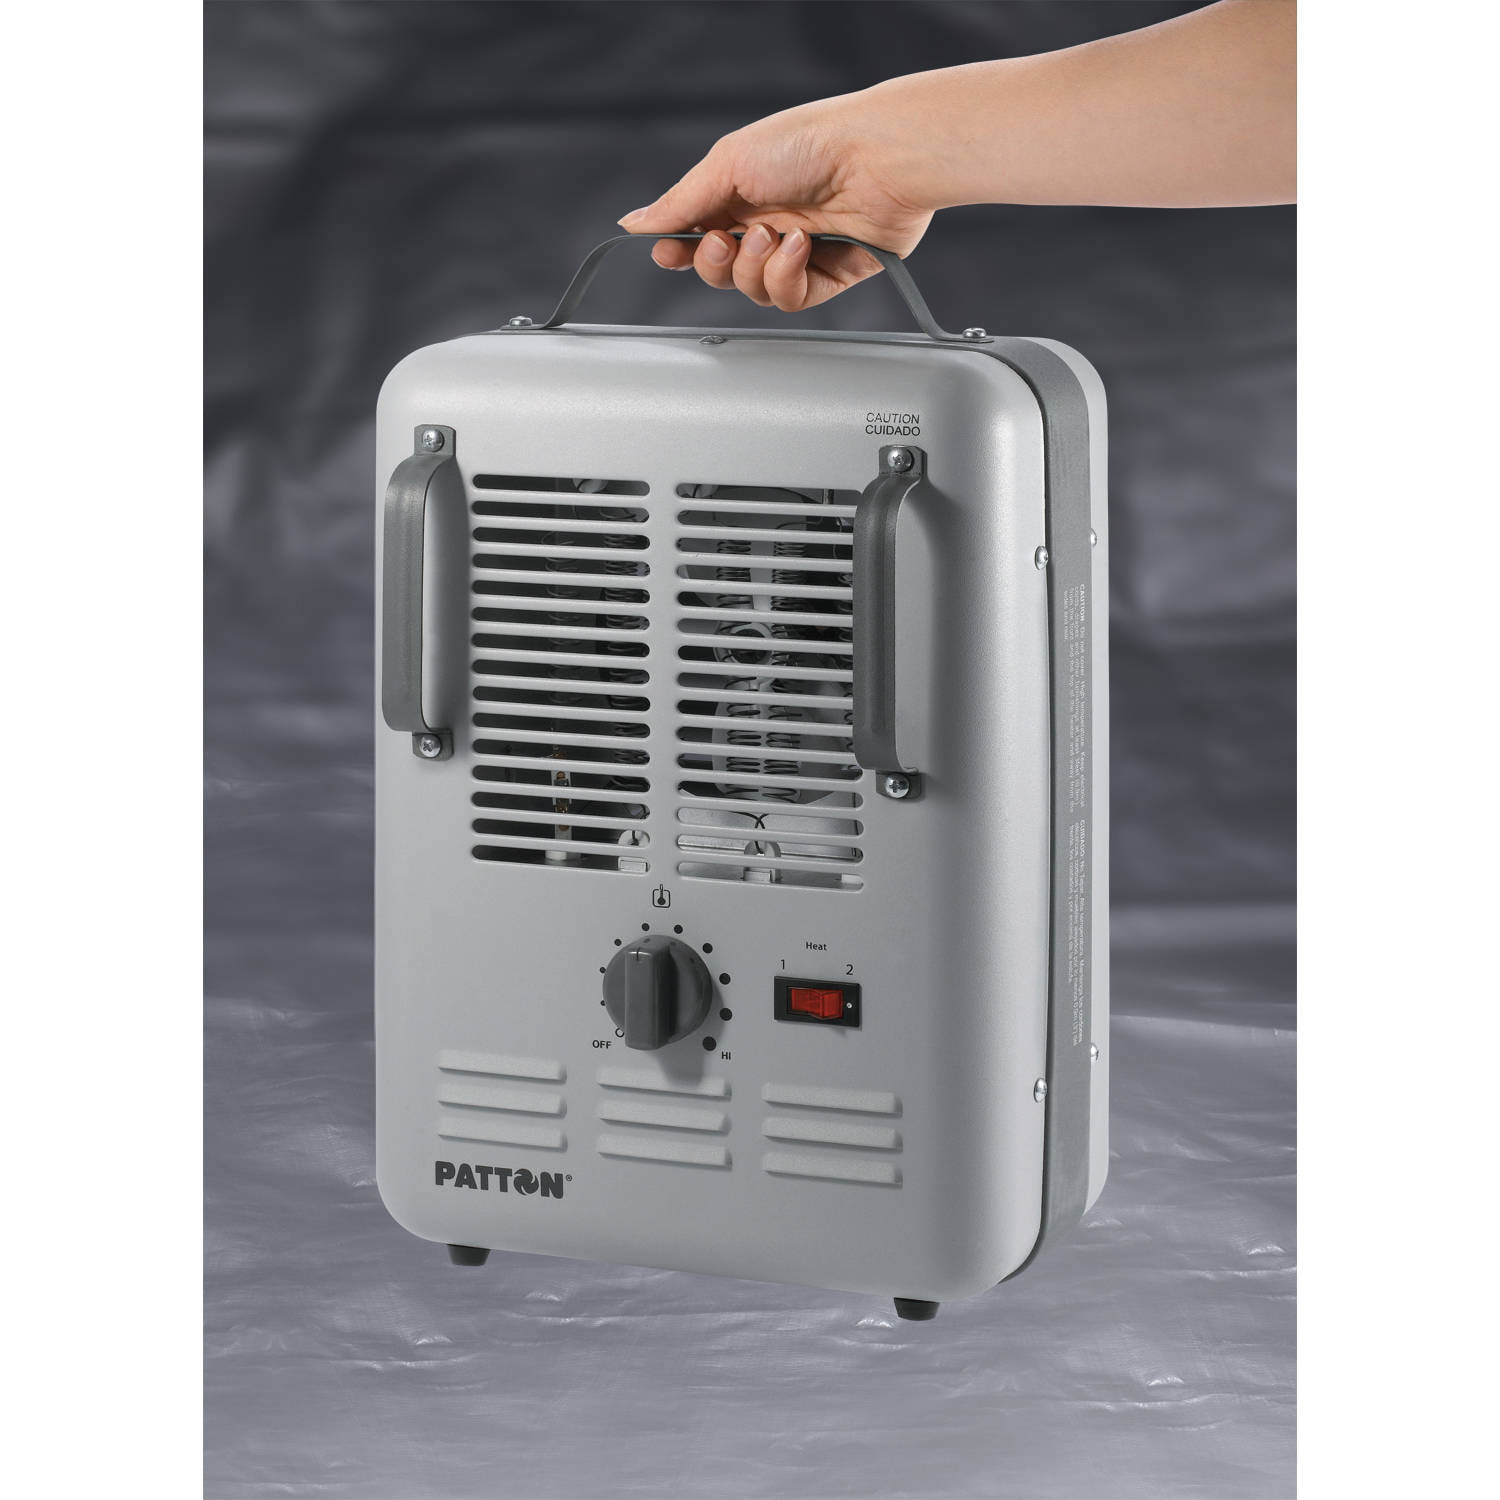 c94b17c5 16a7 4b75 8651 1b2c7a6de945_1.432471d2668b1b7b27d8b92acdb1c7f2 patton electric utility milkhouse heater walmart com Patton Heater Recall at crackthecode.co